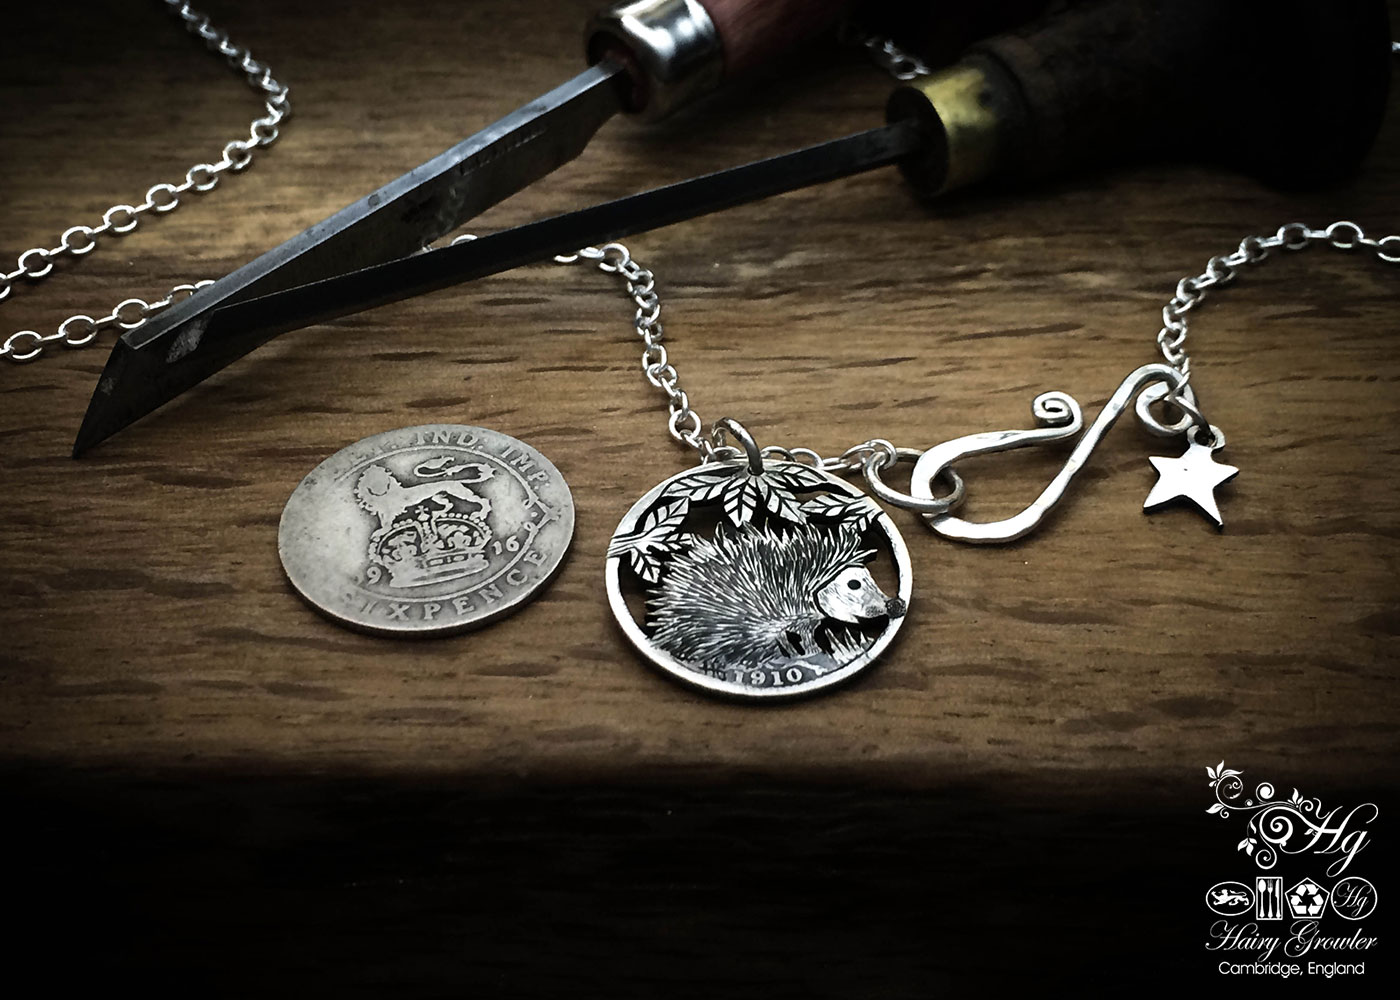 Handmade and repurposed silver sixpence coin hedgehog pendant necklace